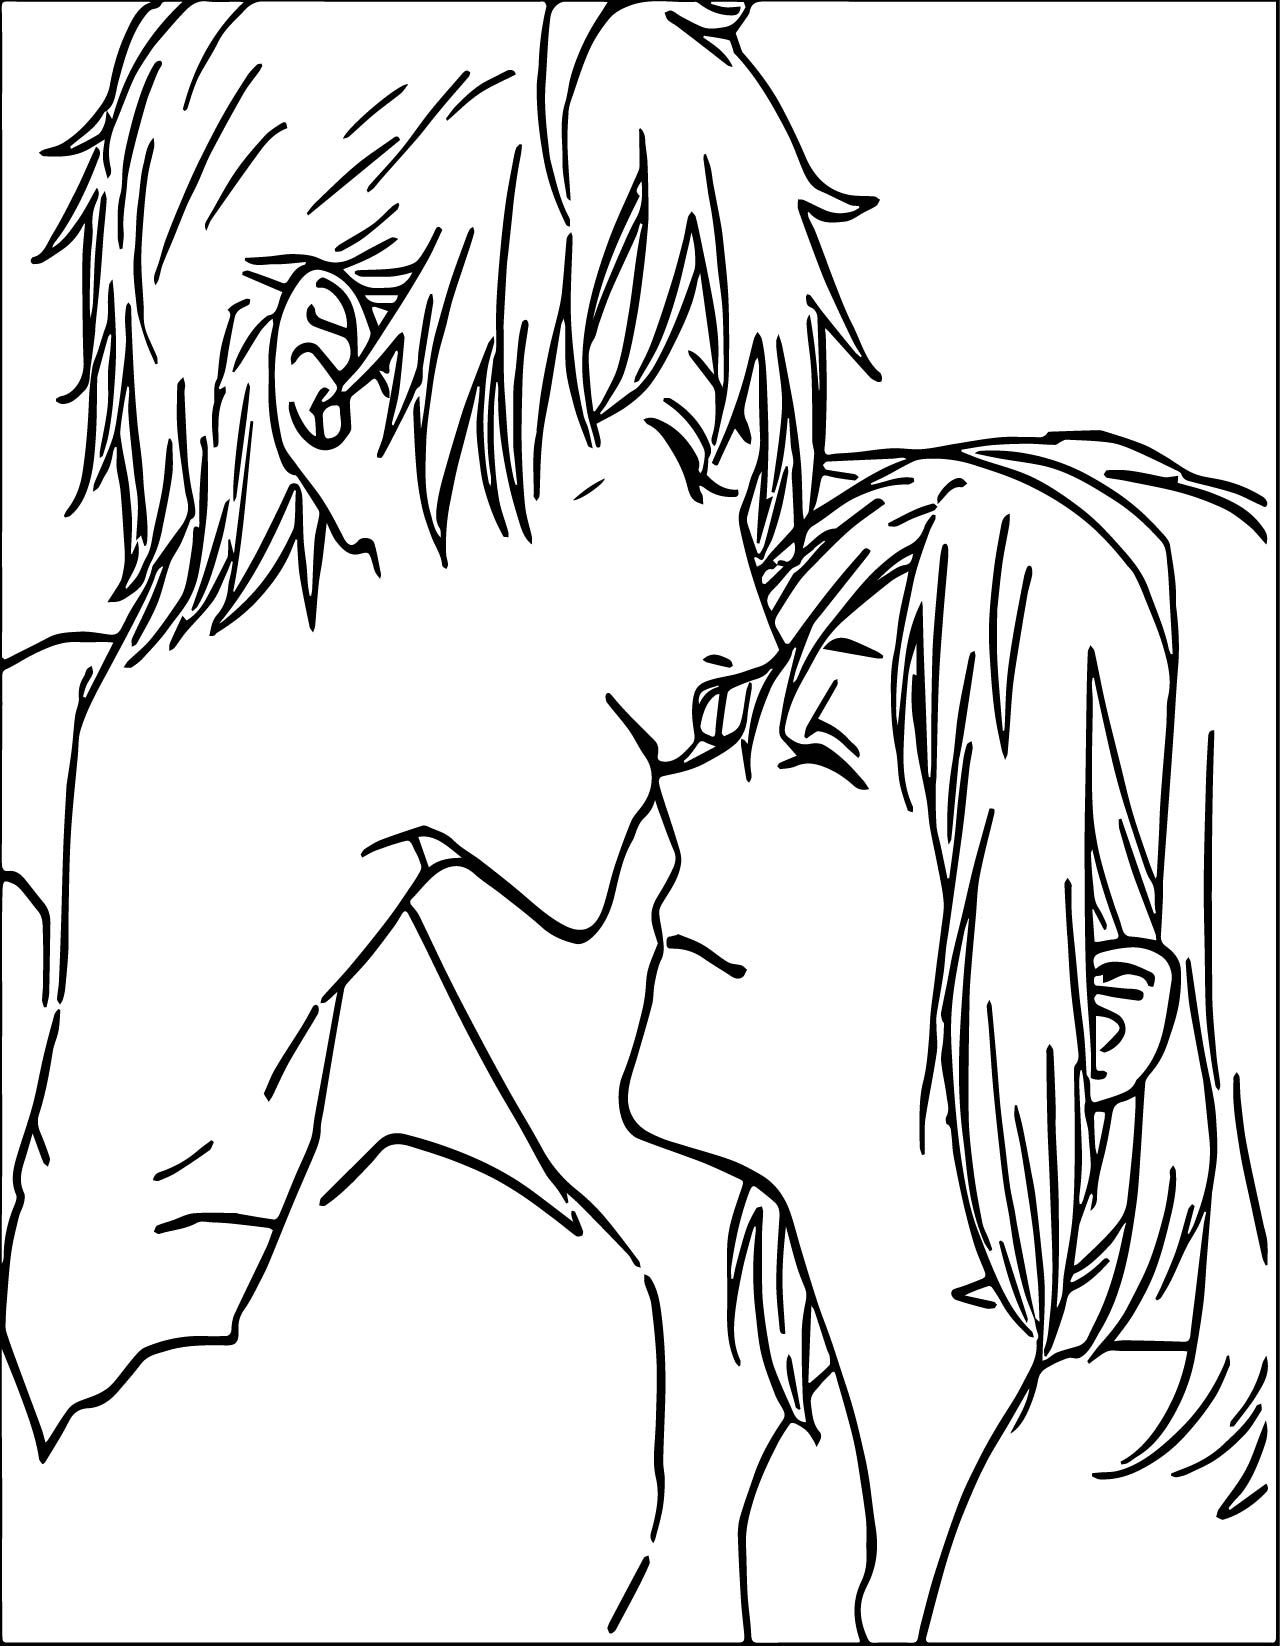 Awesome Anime Boy And Girl Couple Love Coloring Page